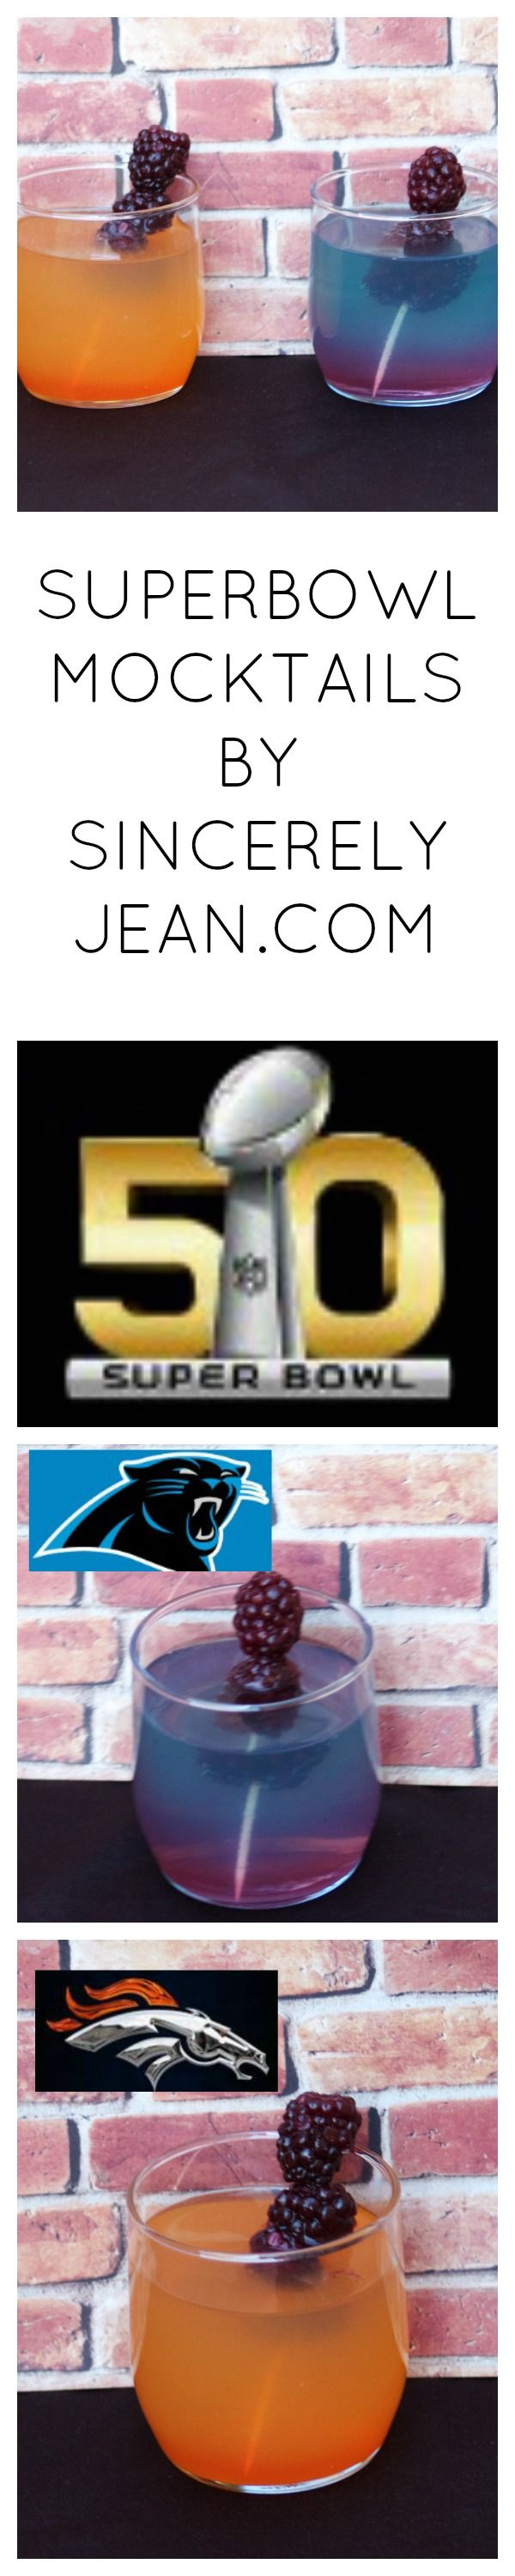 Superbowl 50 Mocktails! Broncos or Panthers? Orange or Blue? Everyone at your party will love them #superbowl #party #superbowl50 #2016 #orange #mocktail #blue #denver #carolina #broncos #panthers